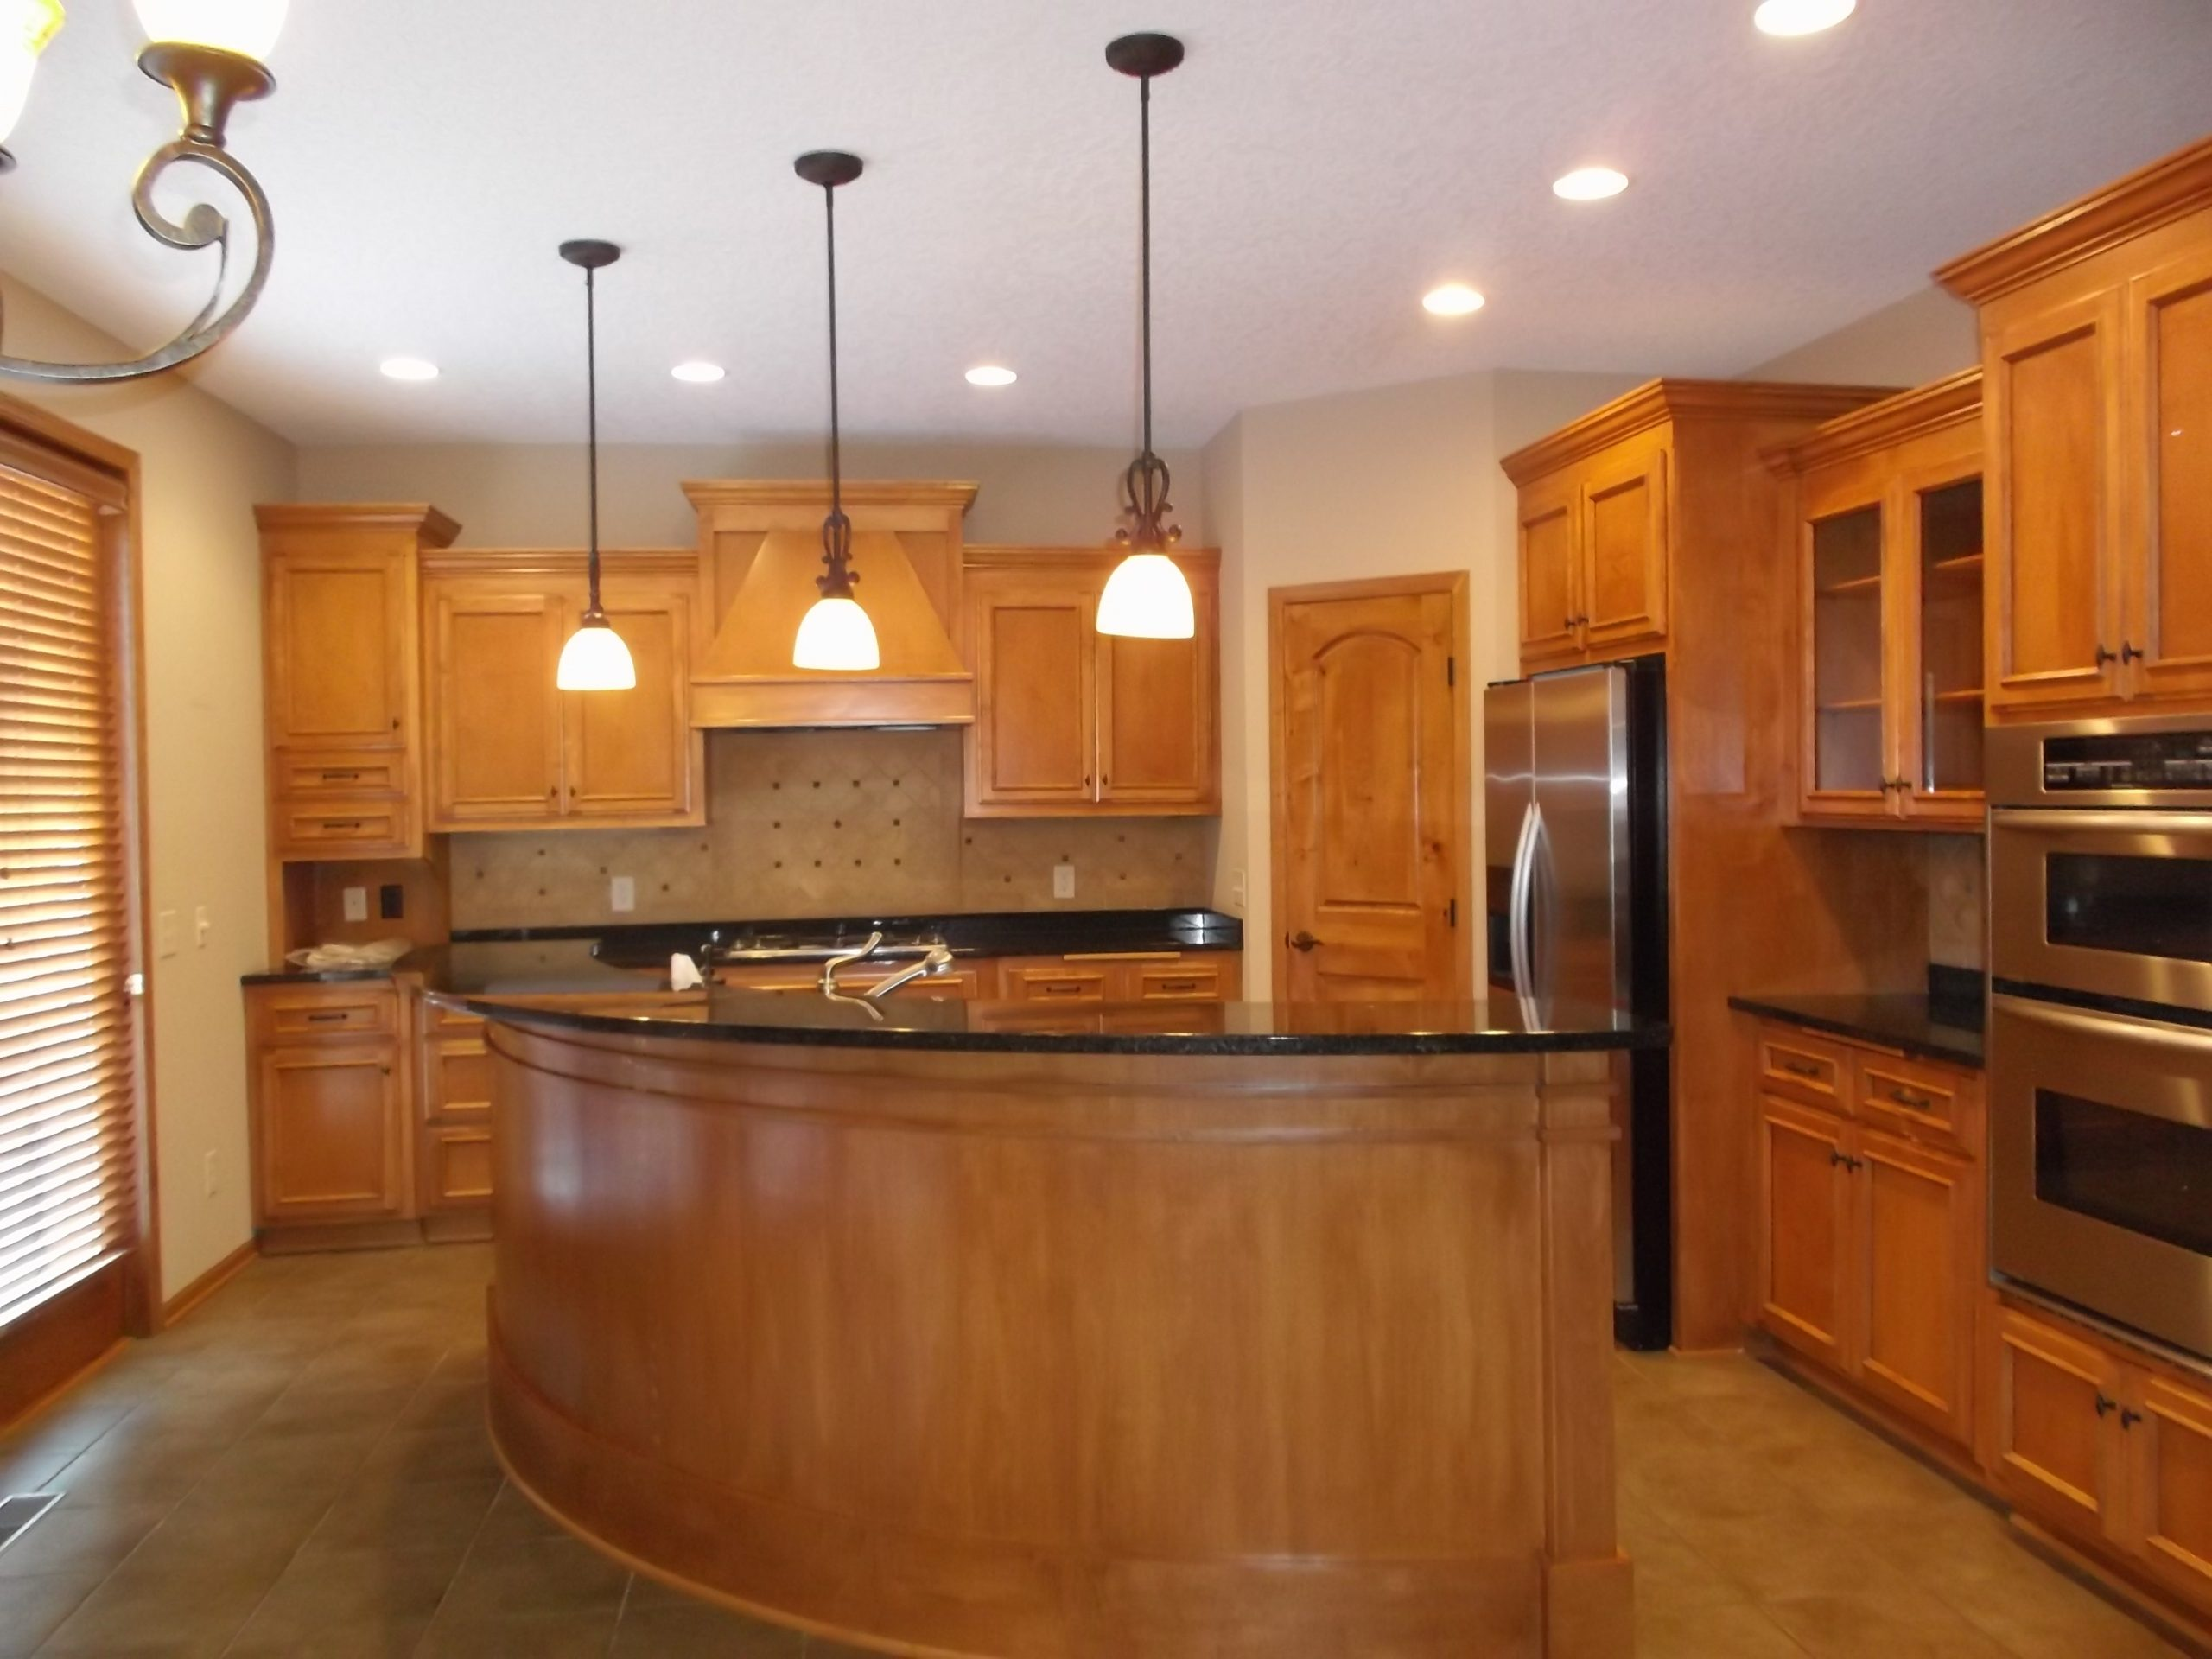 The kitchen initially had an oddly-placed island, which was not functional for our client's needs and had the effect of closing off the space.